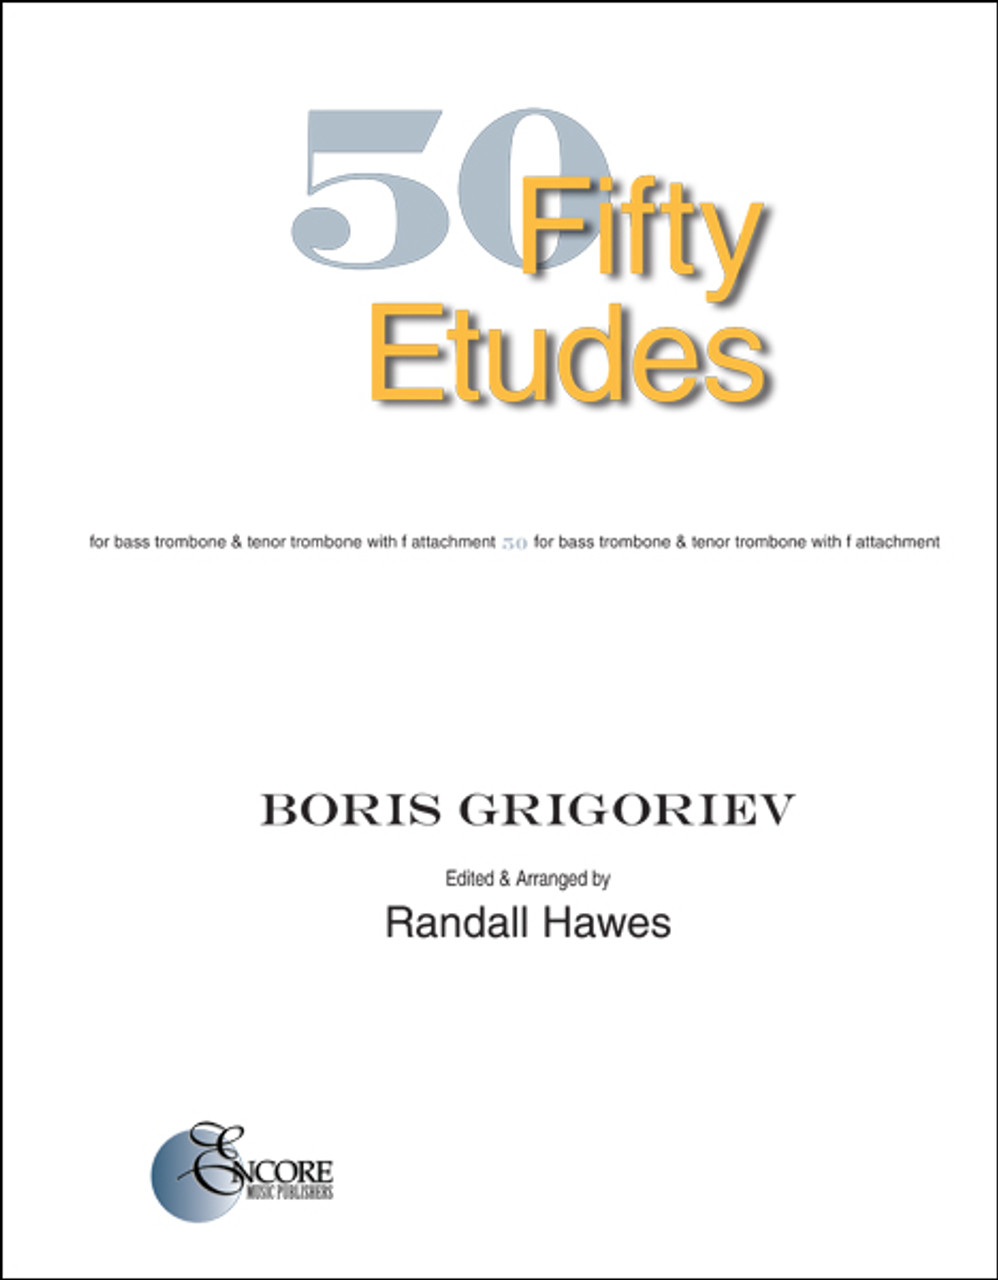 Grigoriev 50 Etudes for Bass Trombone & Tenor Trombone with F Attachment